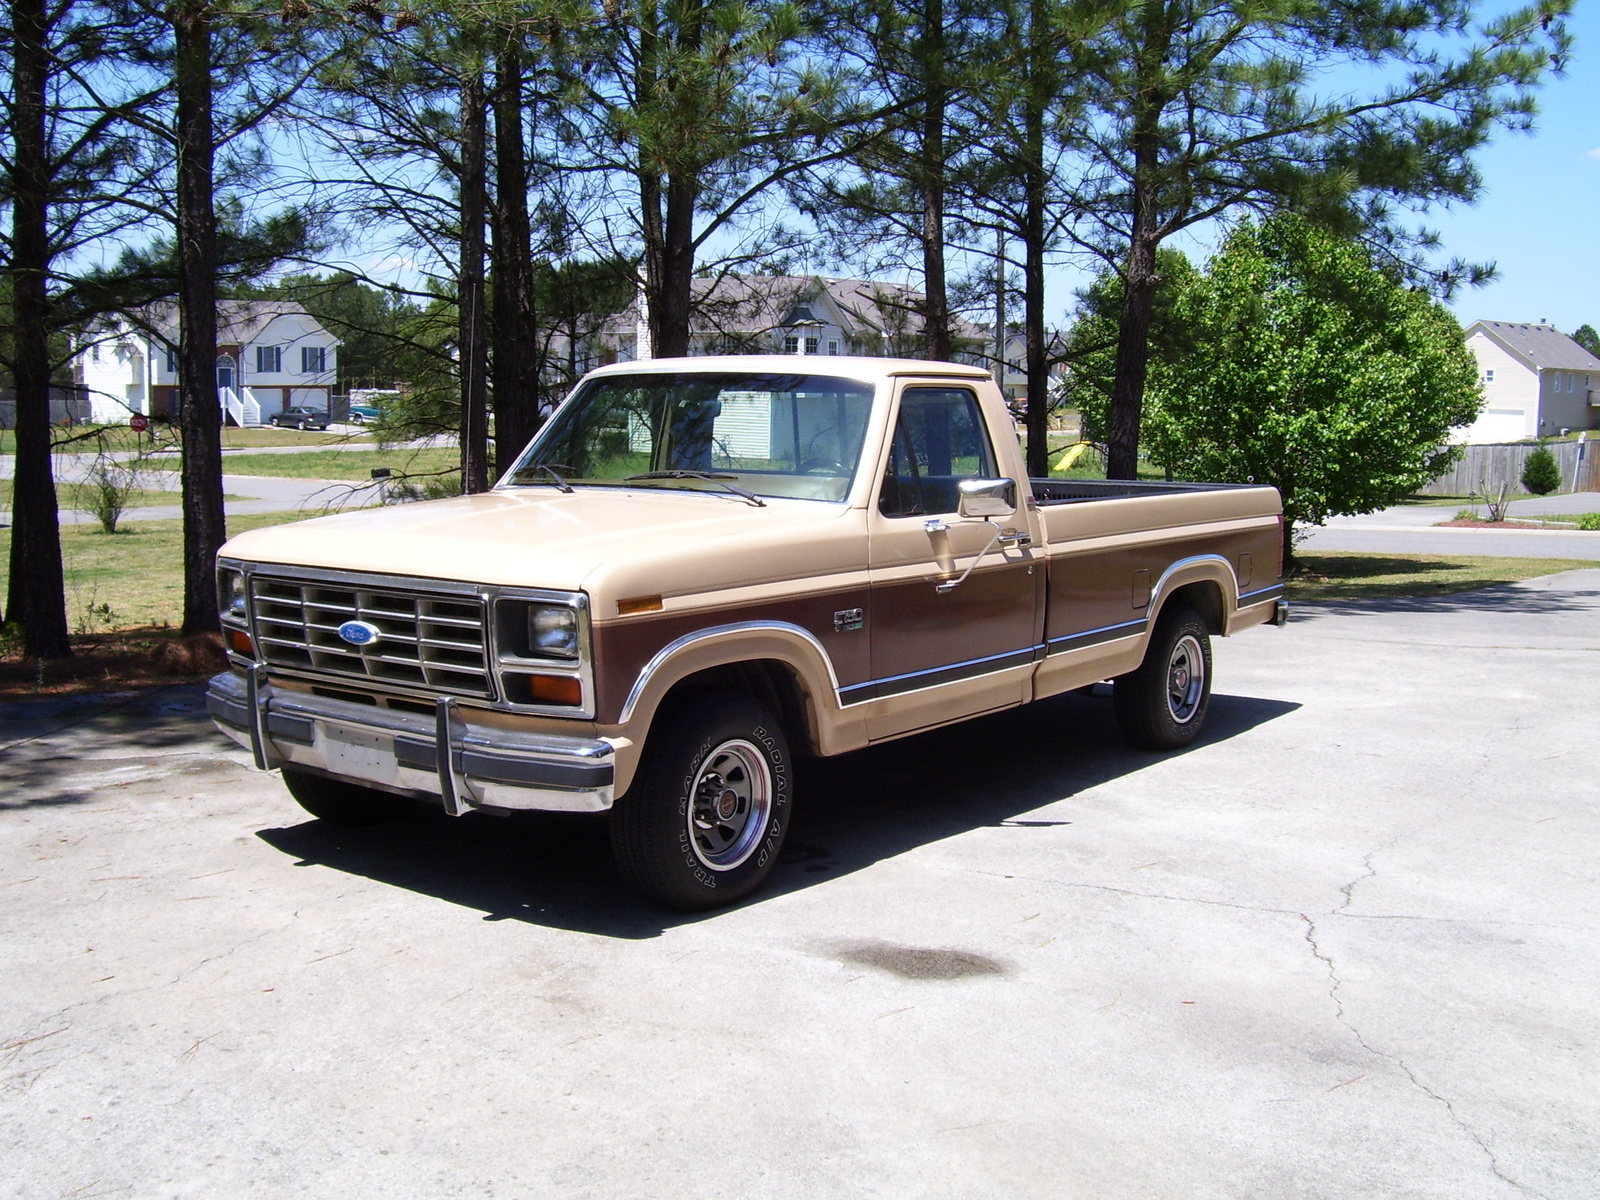 1986 Ford F-150 - Pictures